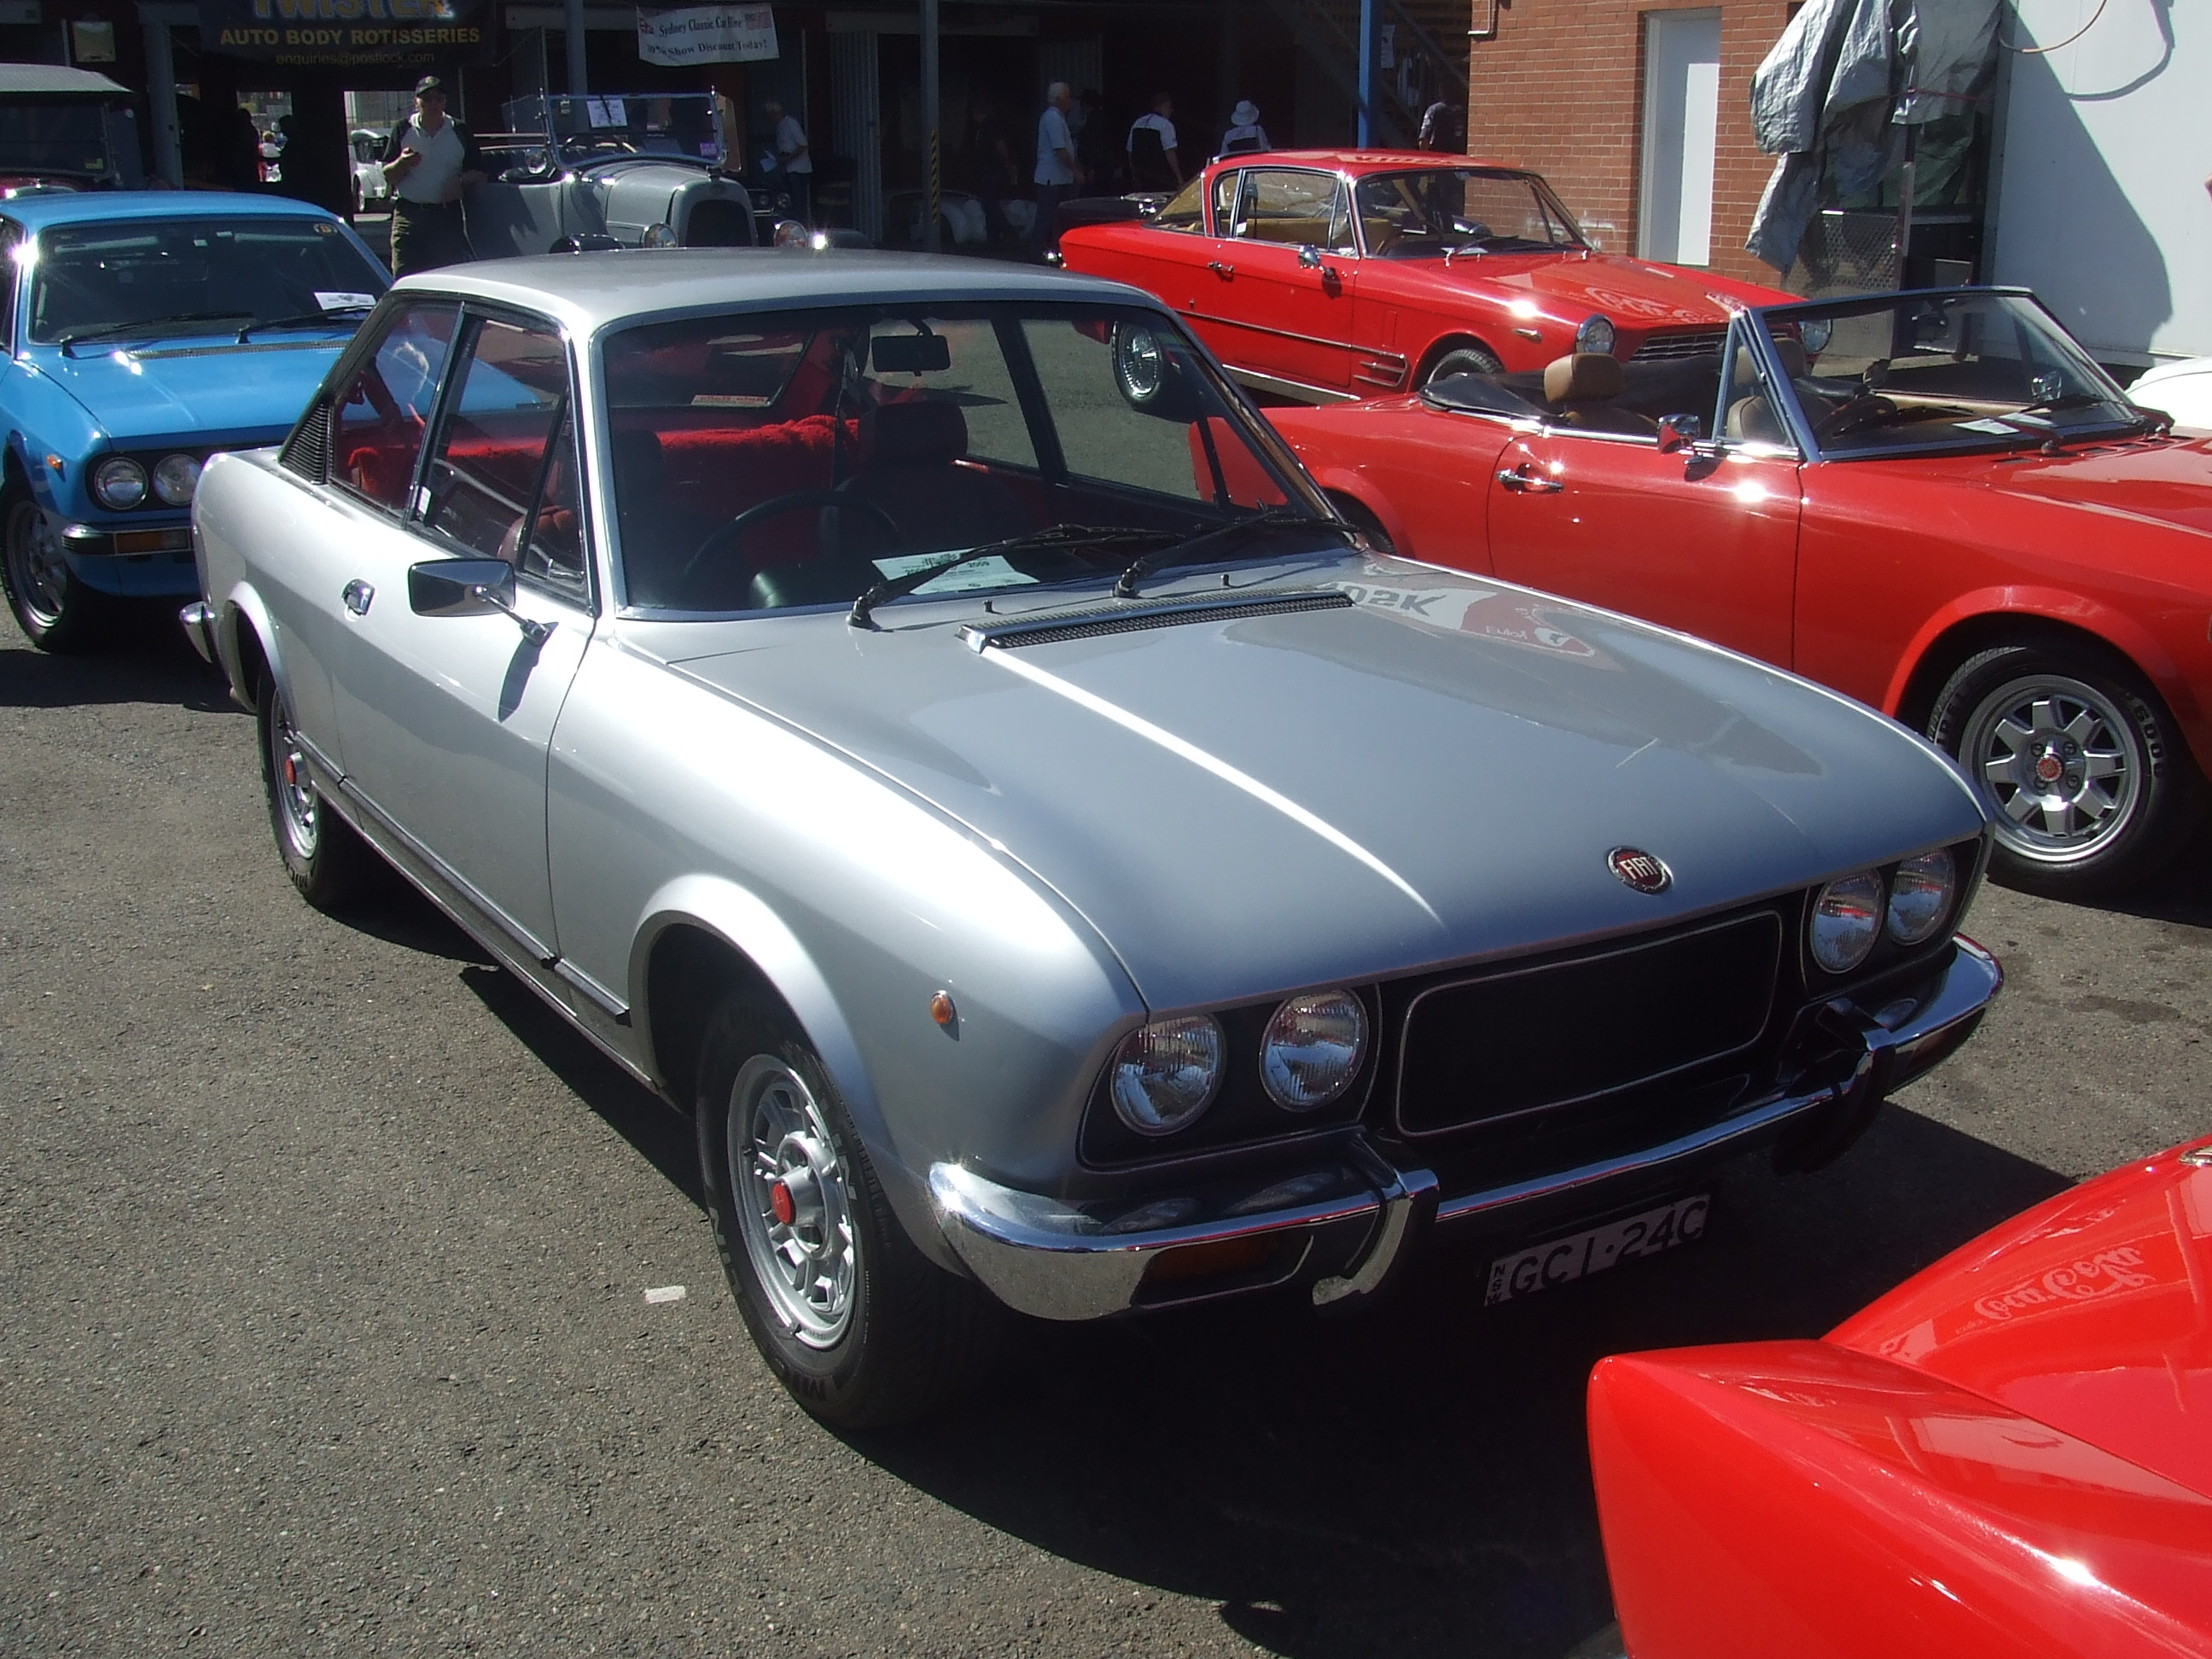 Fiat Of Cc >> File Fiat 124 Sport Coupe Cc 15977562696 Jpg Wikimedia Commons